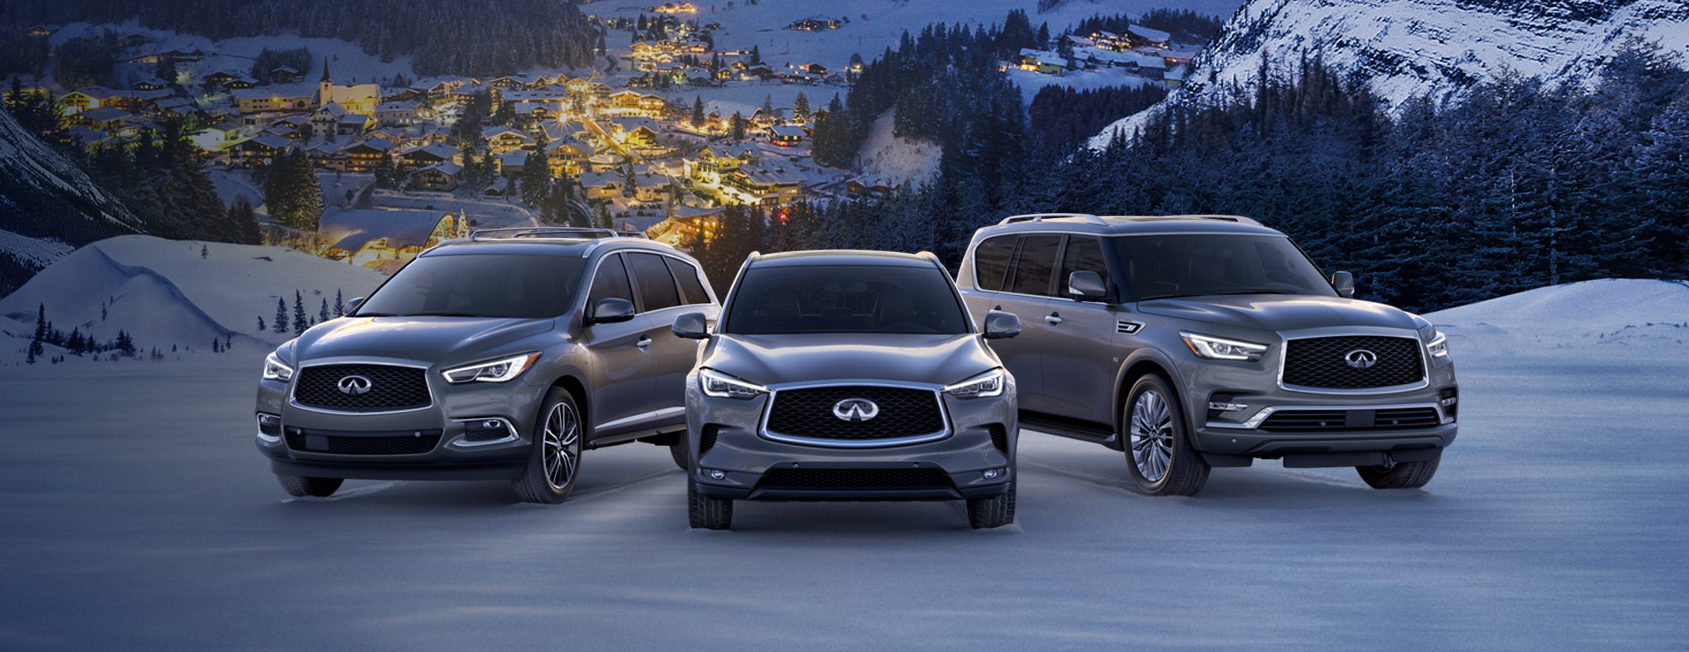 various infiniti models overlooking a mountainside town